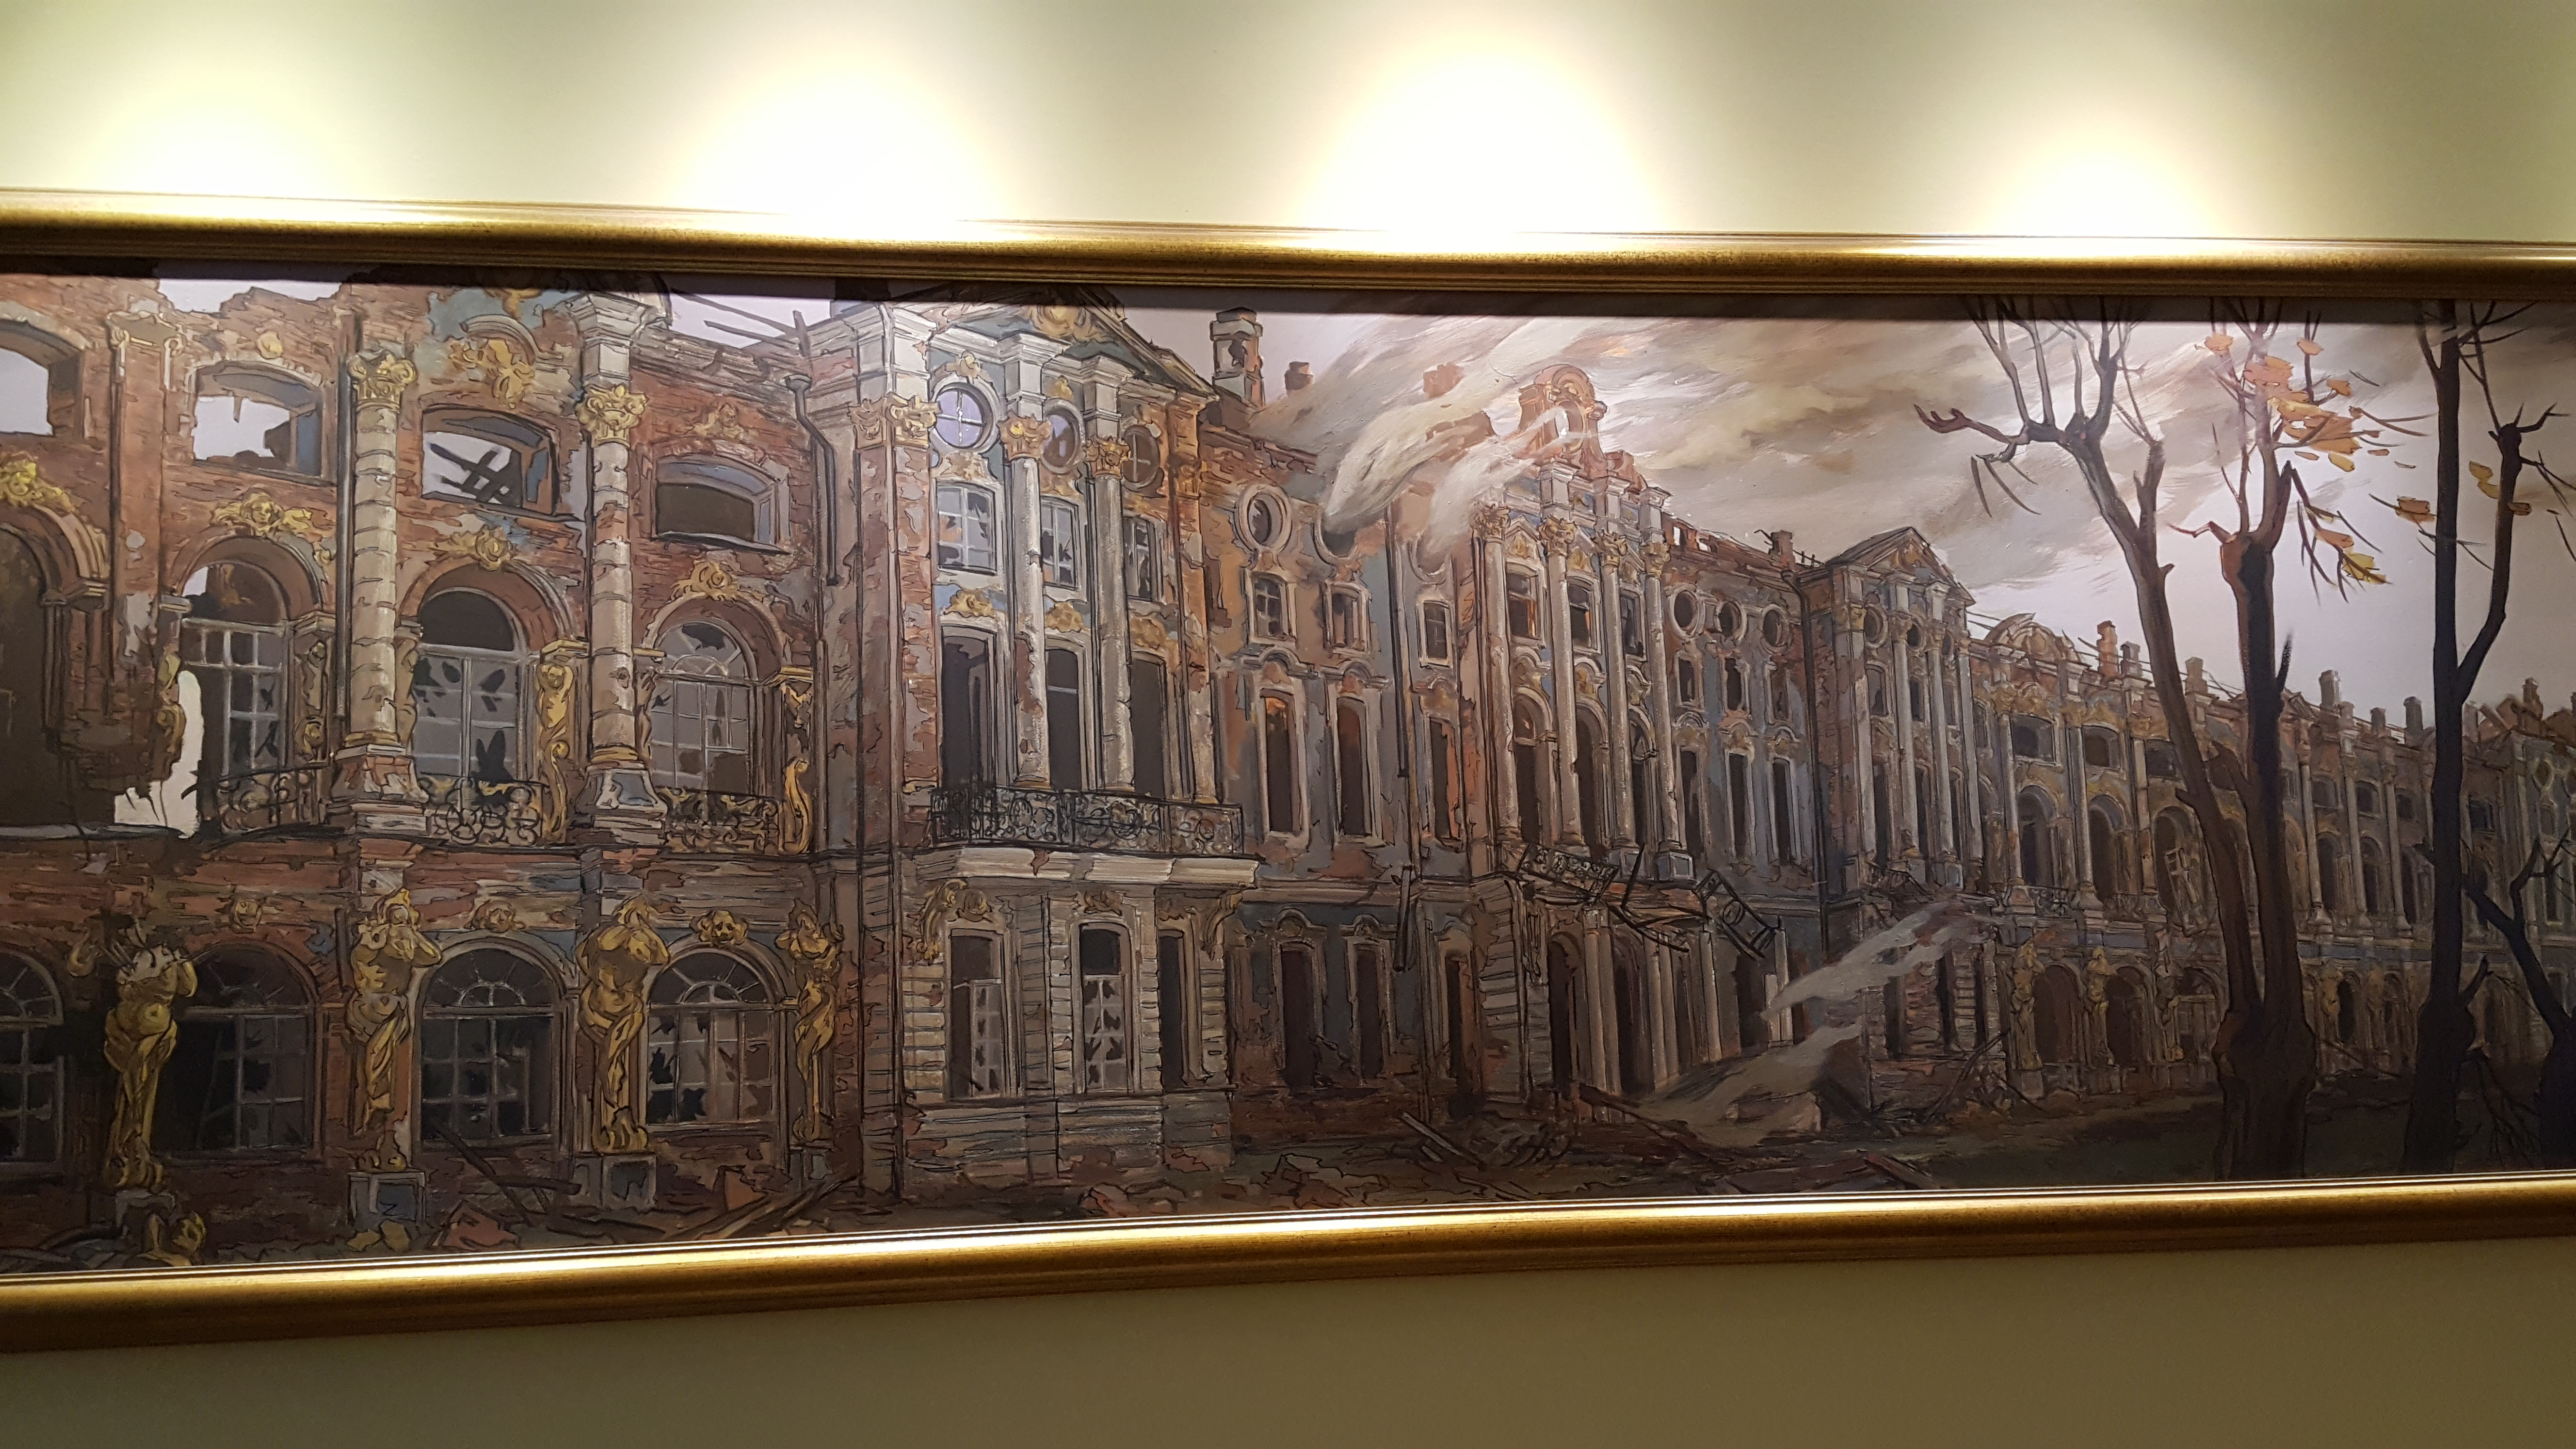 Painting of Catherine Palace after the German invasion of WWII. The palace was ransacked and burned.